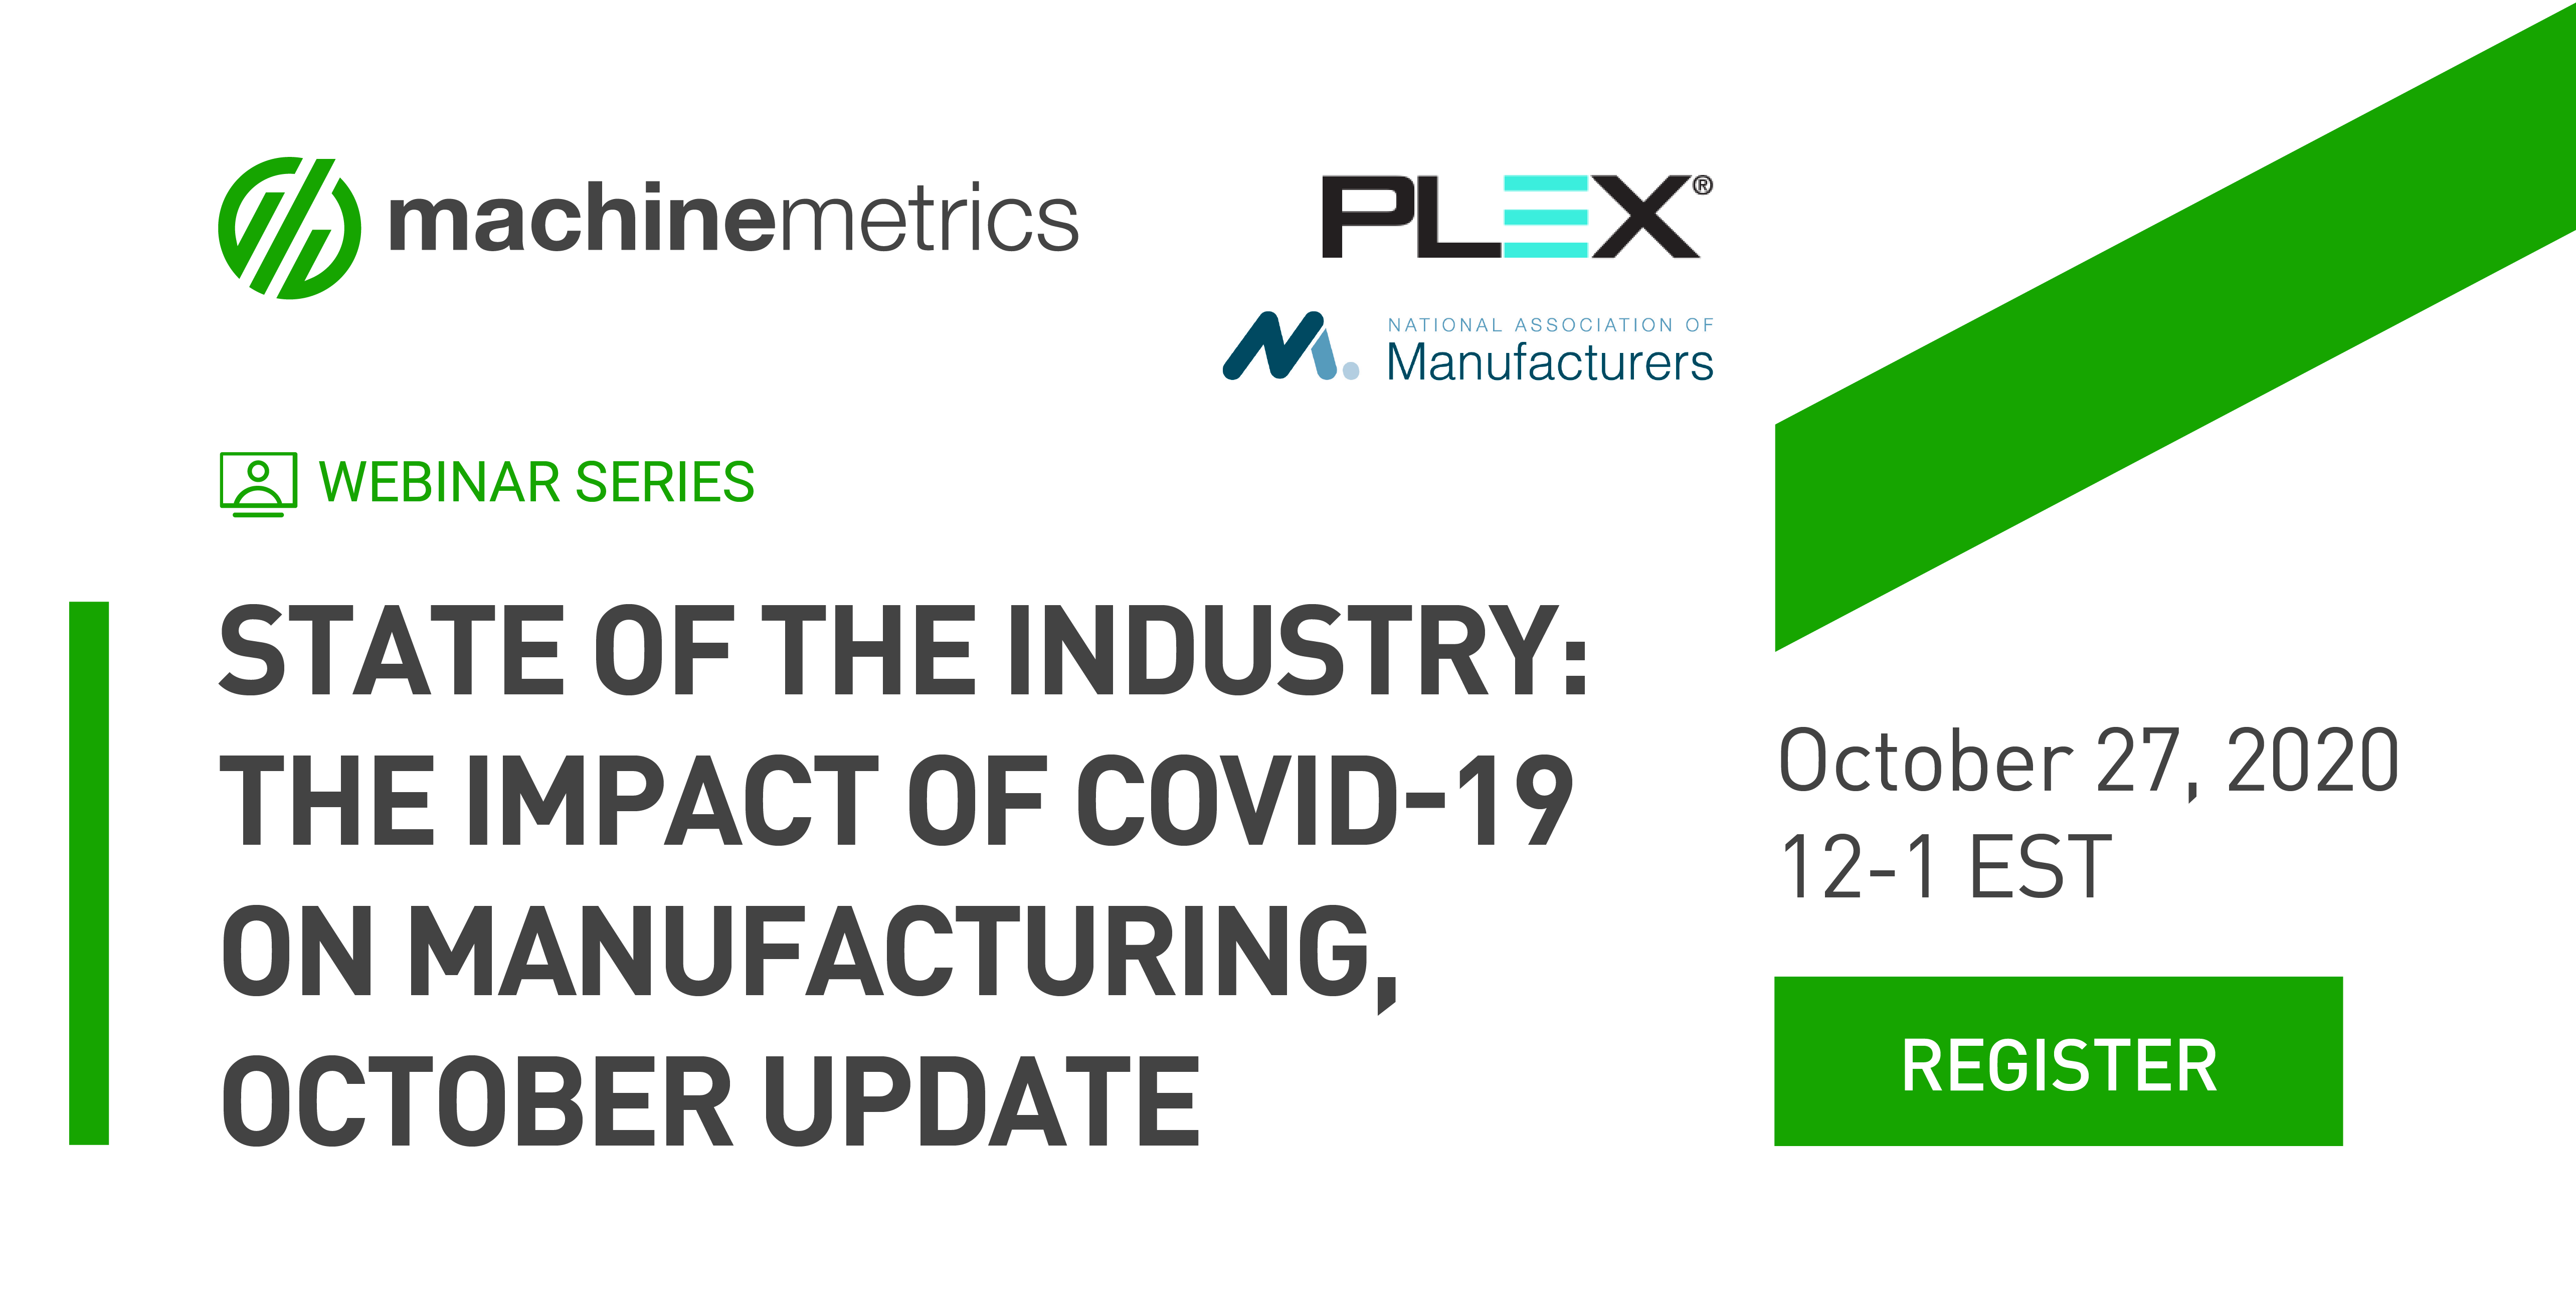 The Impact of COVID-19 on Manufacturing, October Update